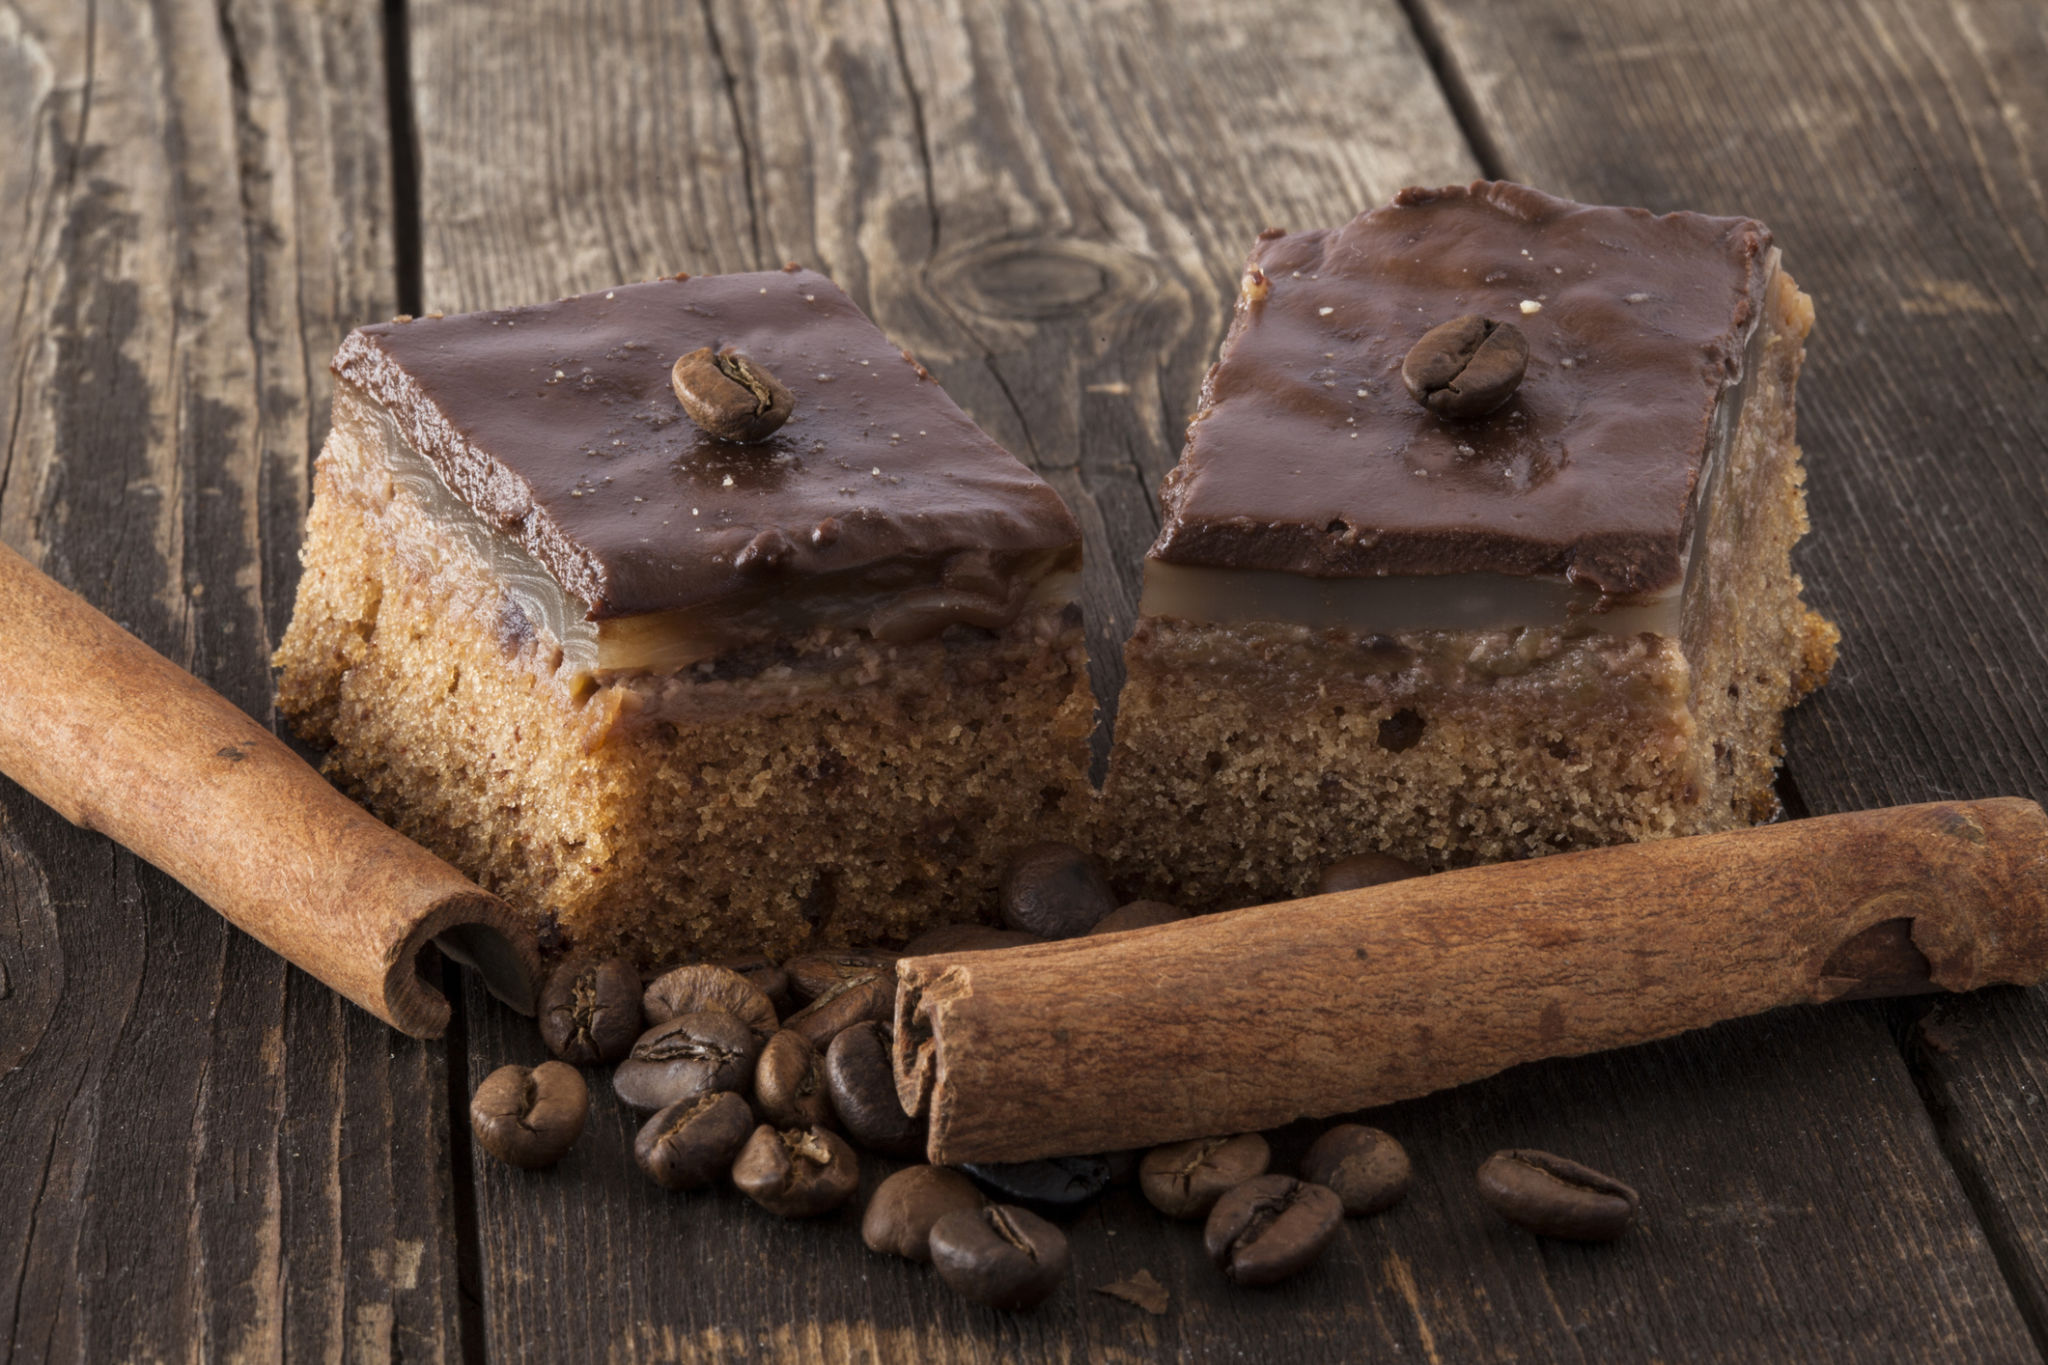 Two chocolate tarts with coffee beans and cinnamon sticks, shot closeup, against a wooden surface. Simply delicious!